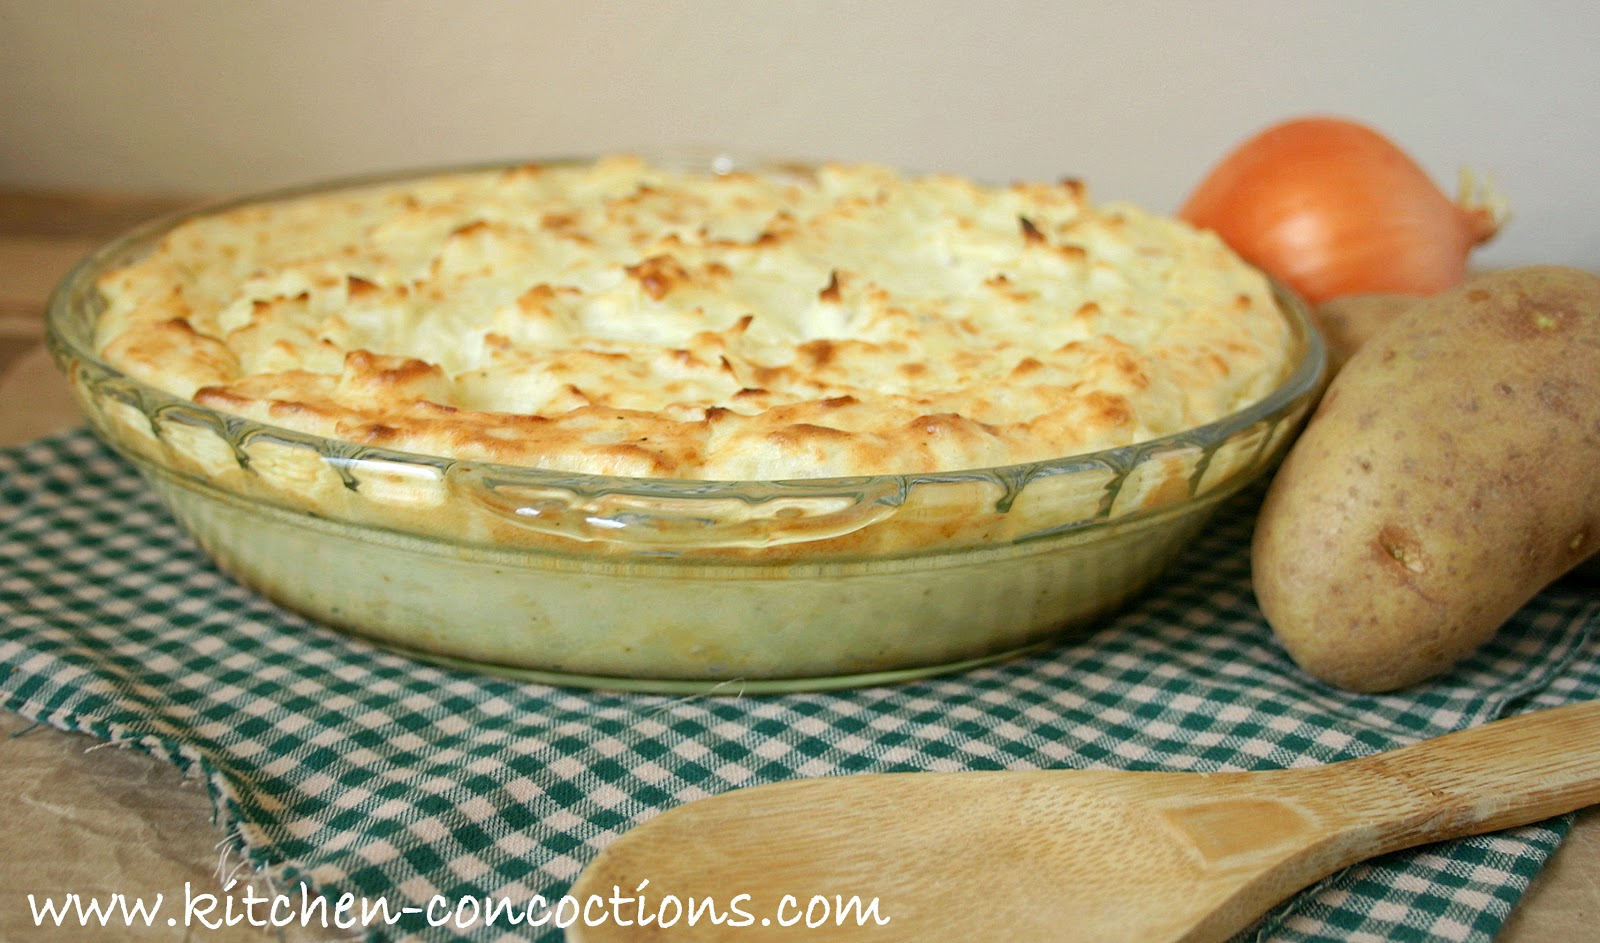 Kitchen Concoctions: Two Potato and Parsnip Baked Mashed Potatoes